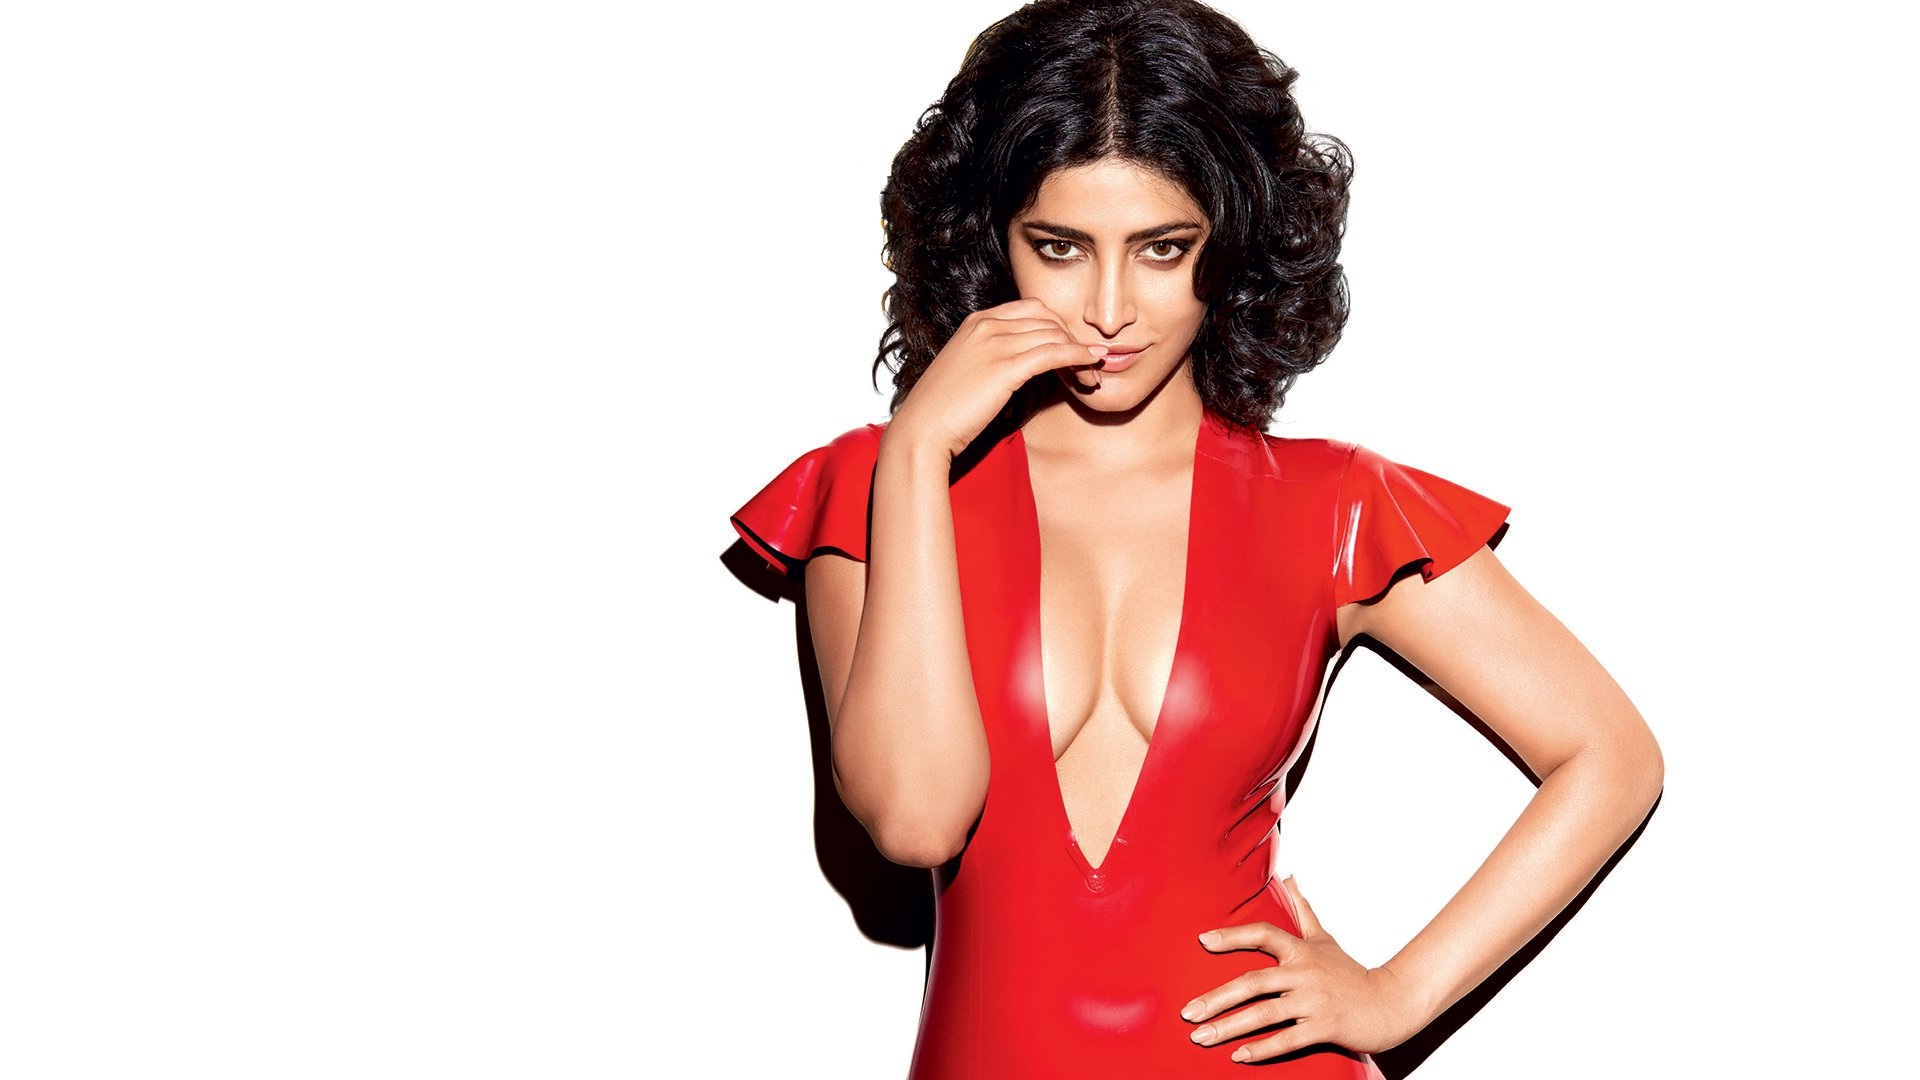 Don`t like stereotyping others: Shruti Haasan